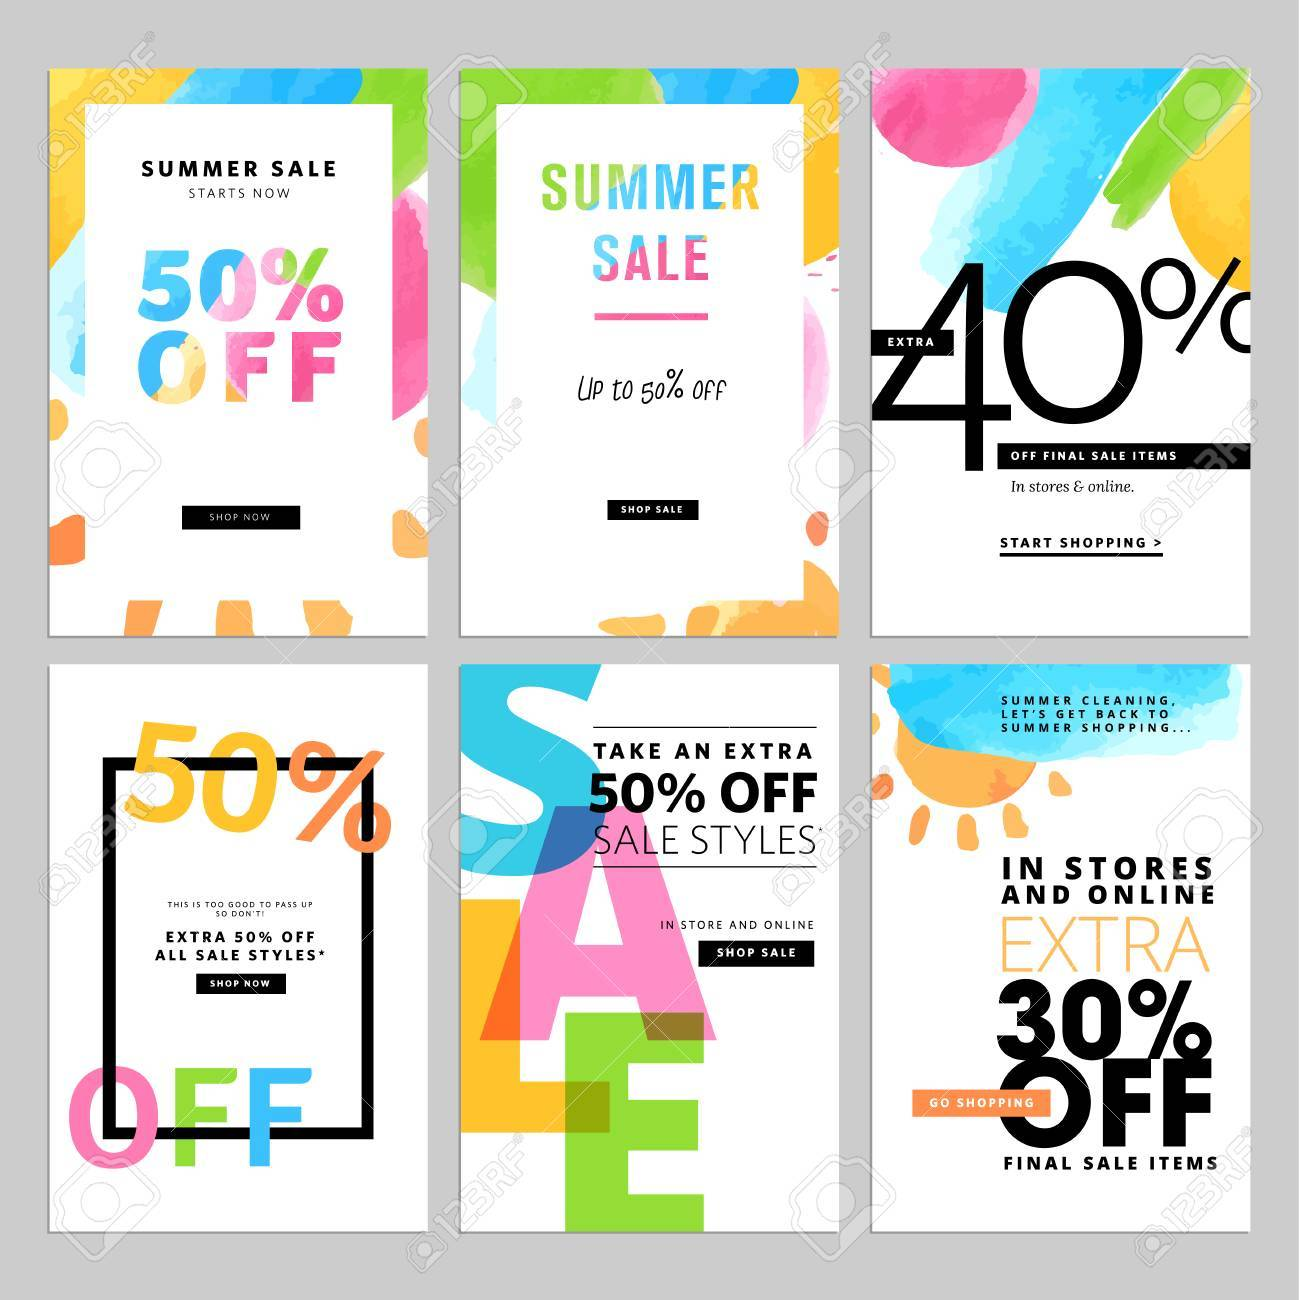 Set of social media sale template.illustrations for website and mobile website posters, email and newsletter designs, ads, promotional material. - 59939998